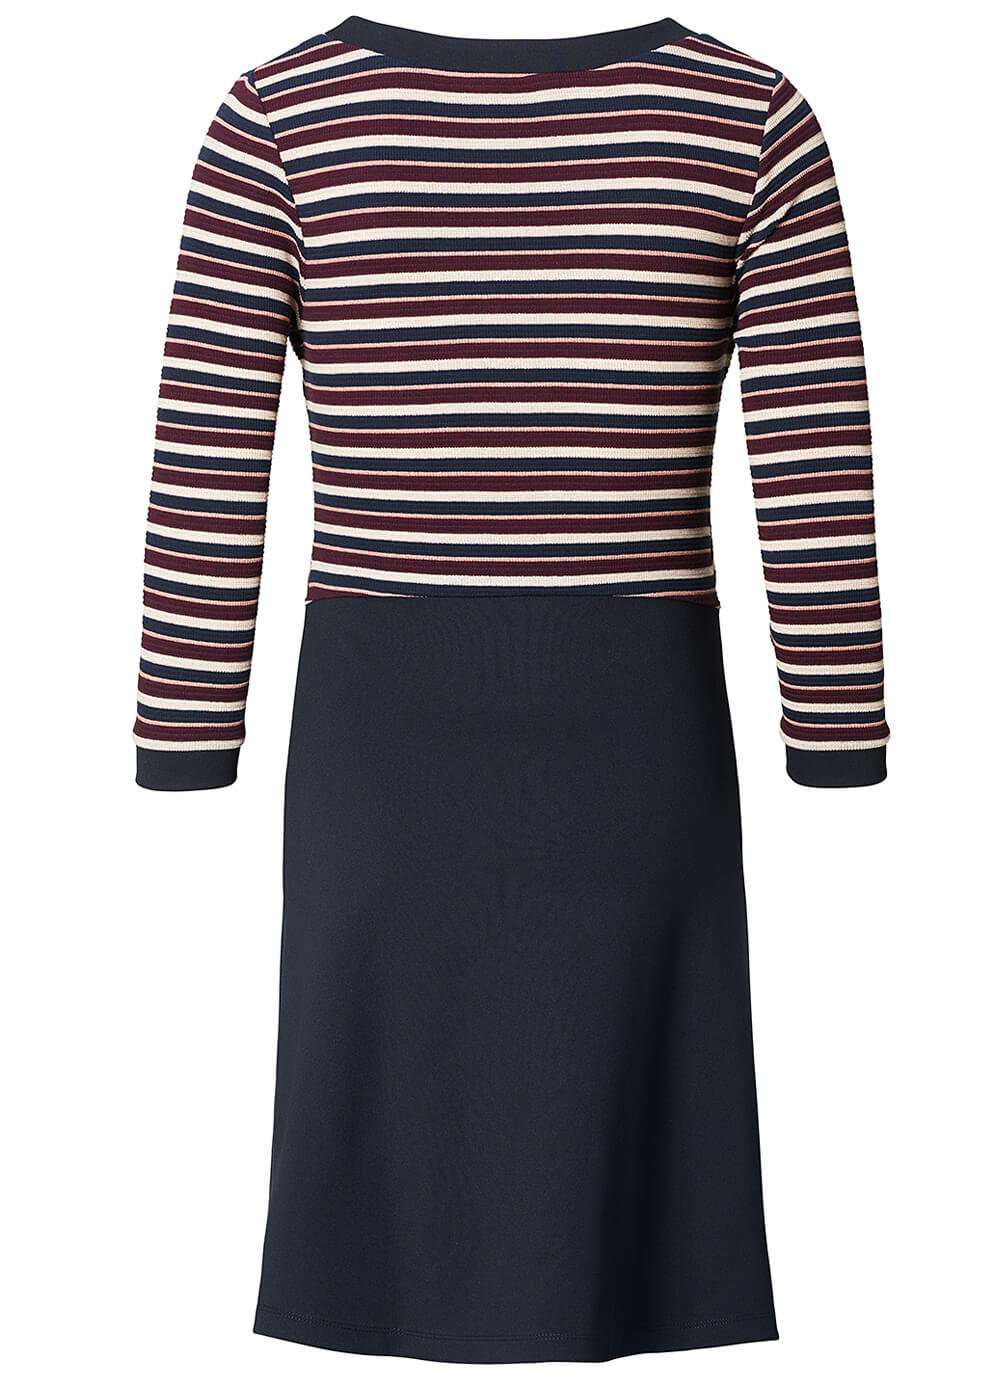 Layered Maternity Nursing Dress in Navy Stripes by Queen mum